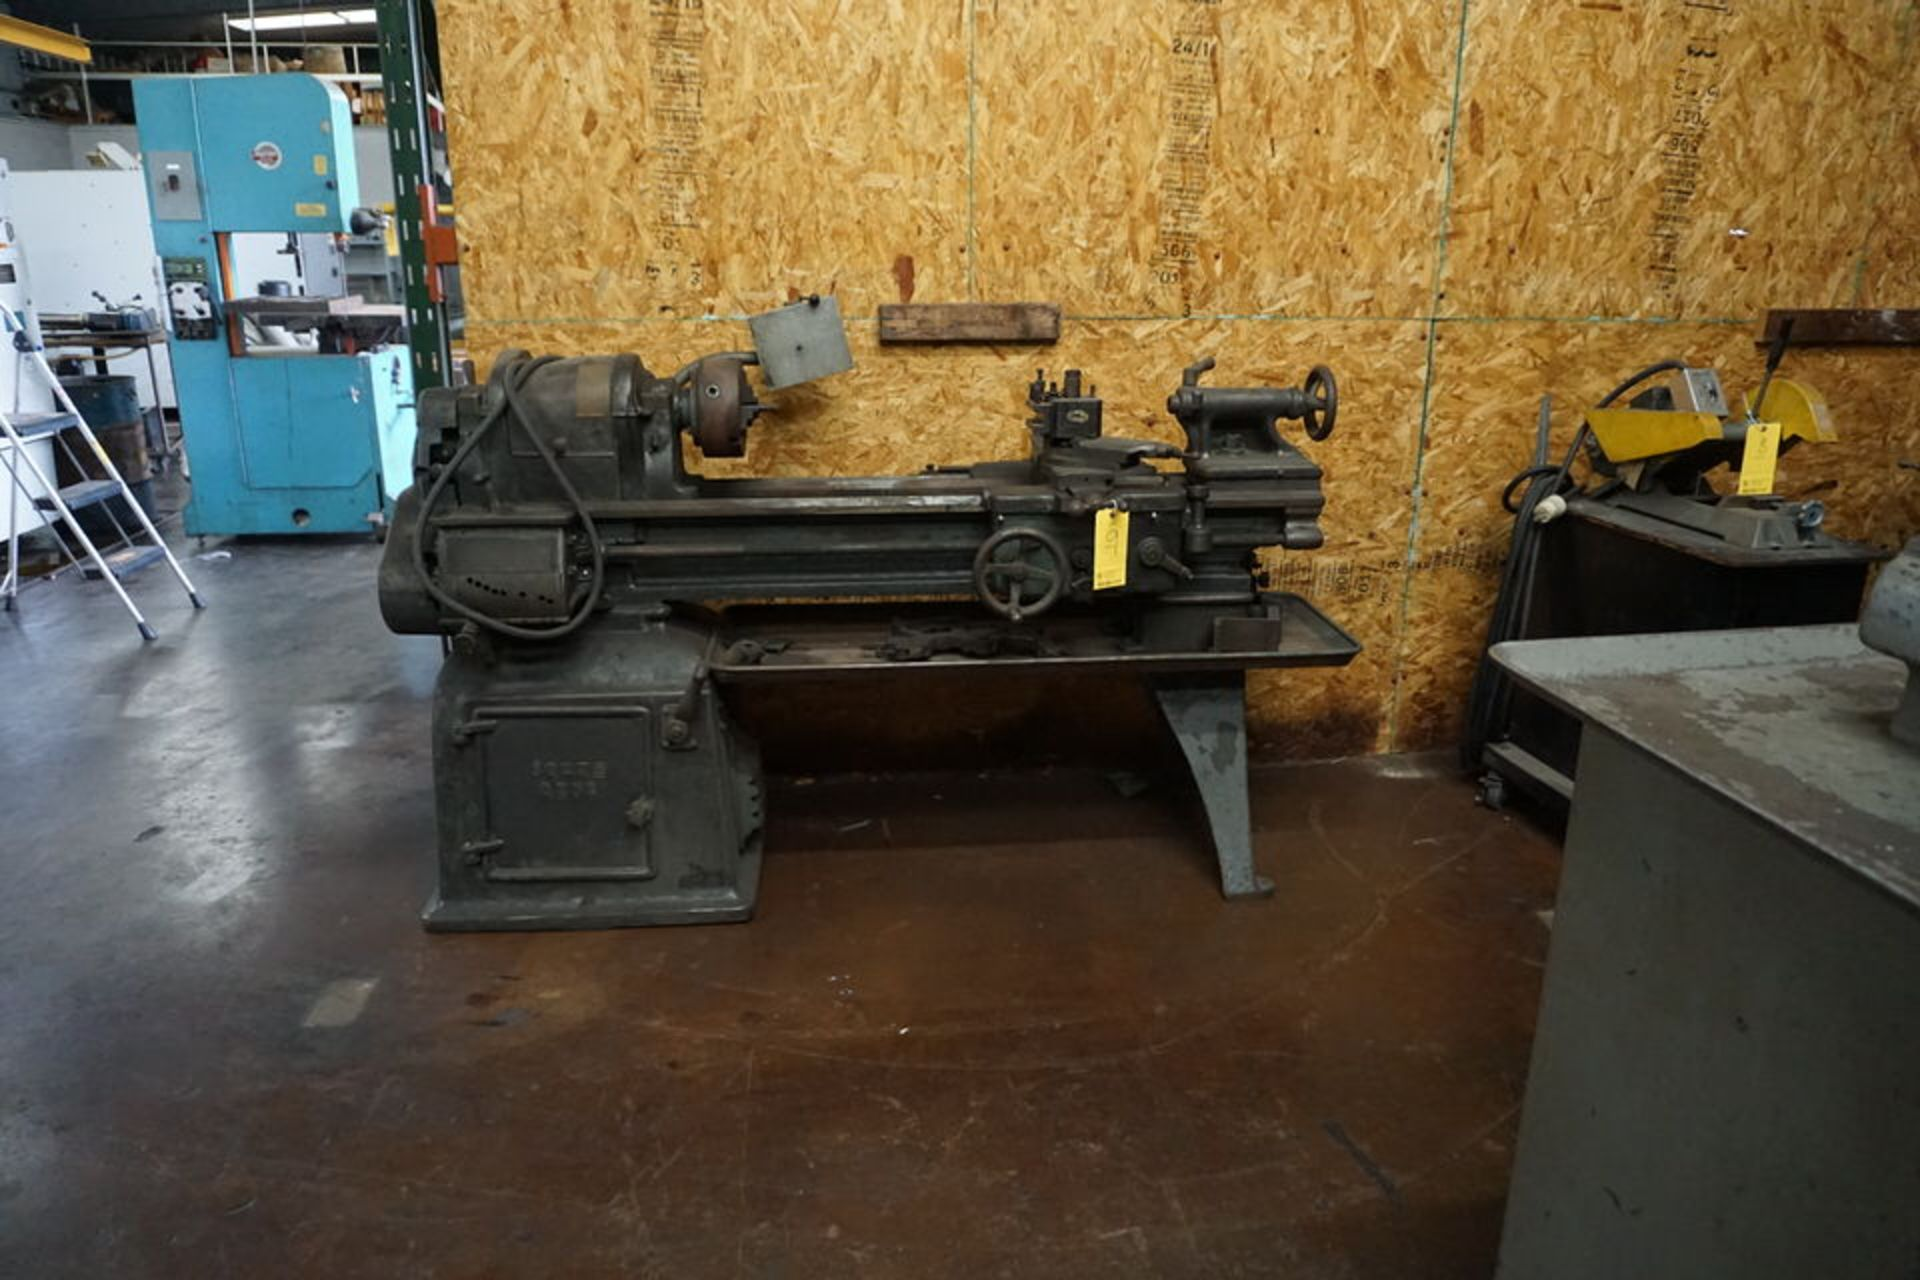 SOUTH BEND MANUAL LATHE W/ 3 JAW CHUCK, TOOPOST & TAILSTOCK